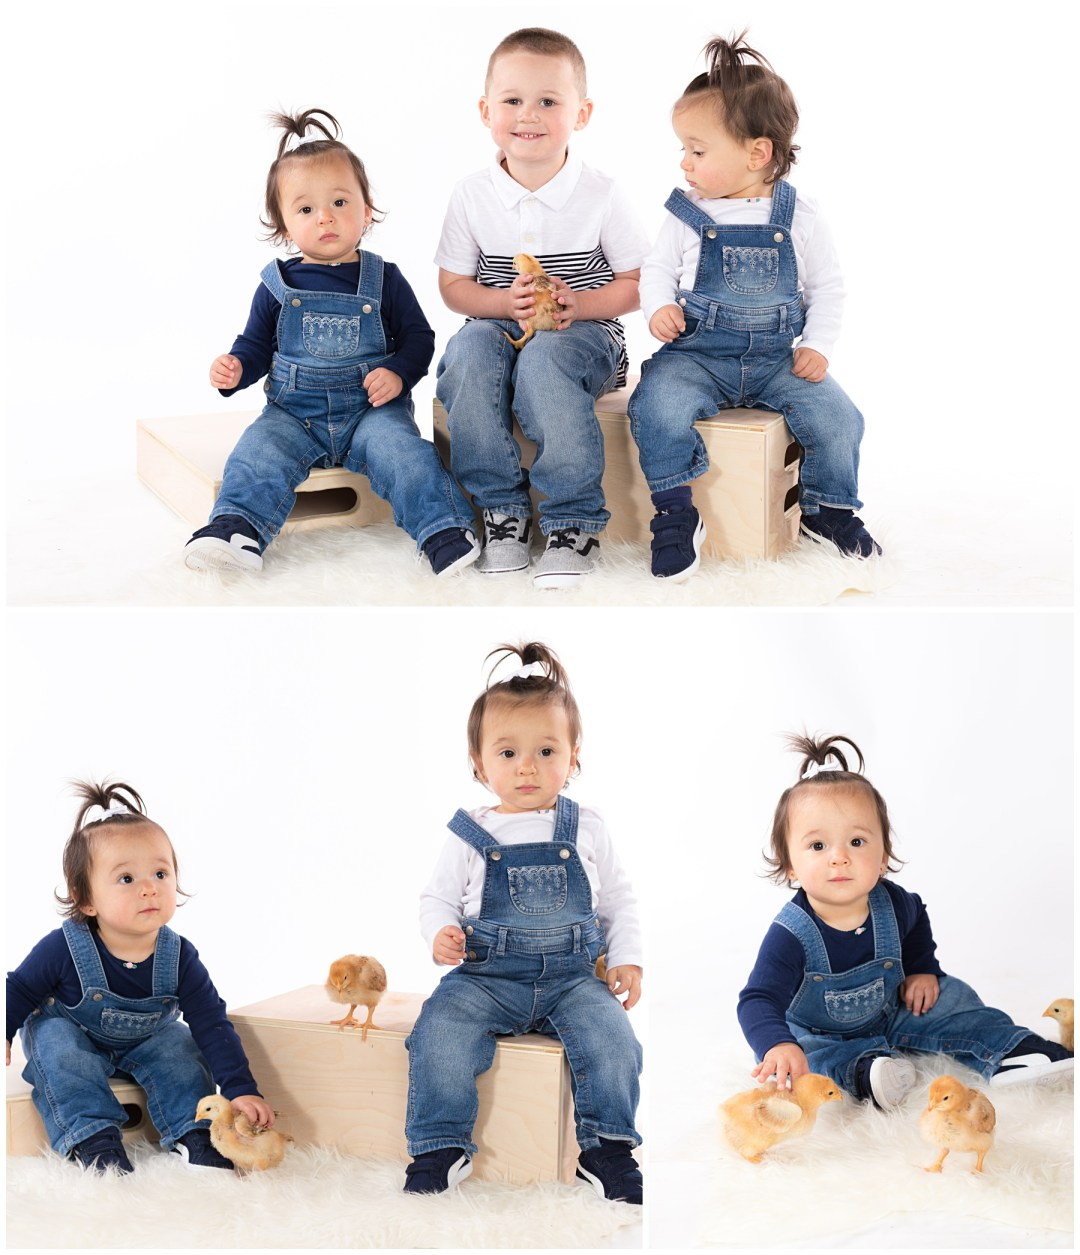 Sibling toddler kids portraits with baby chicks